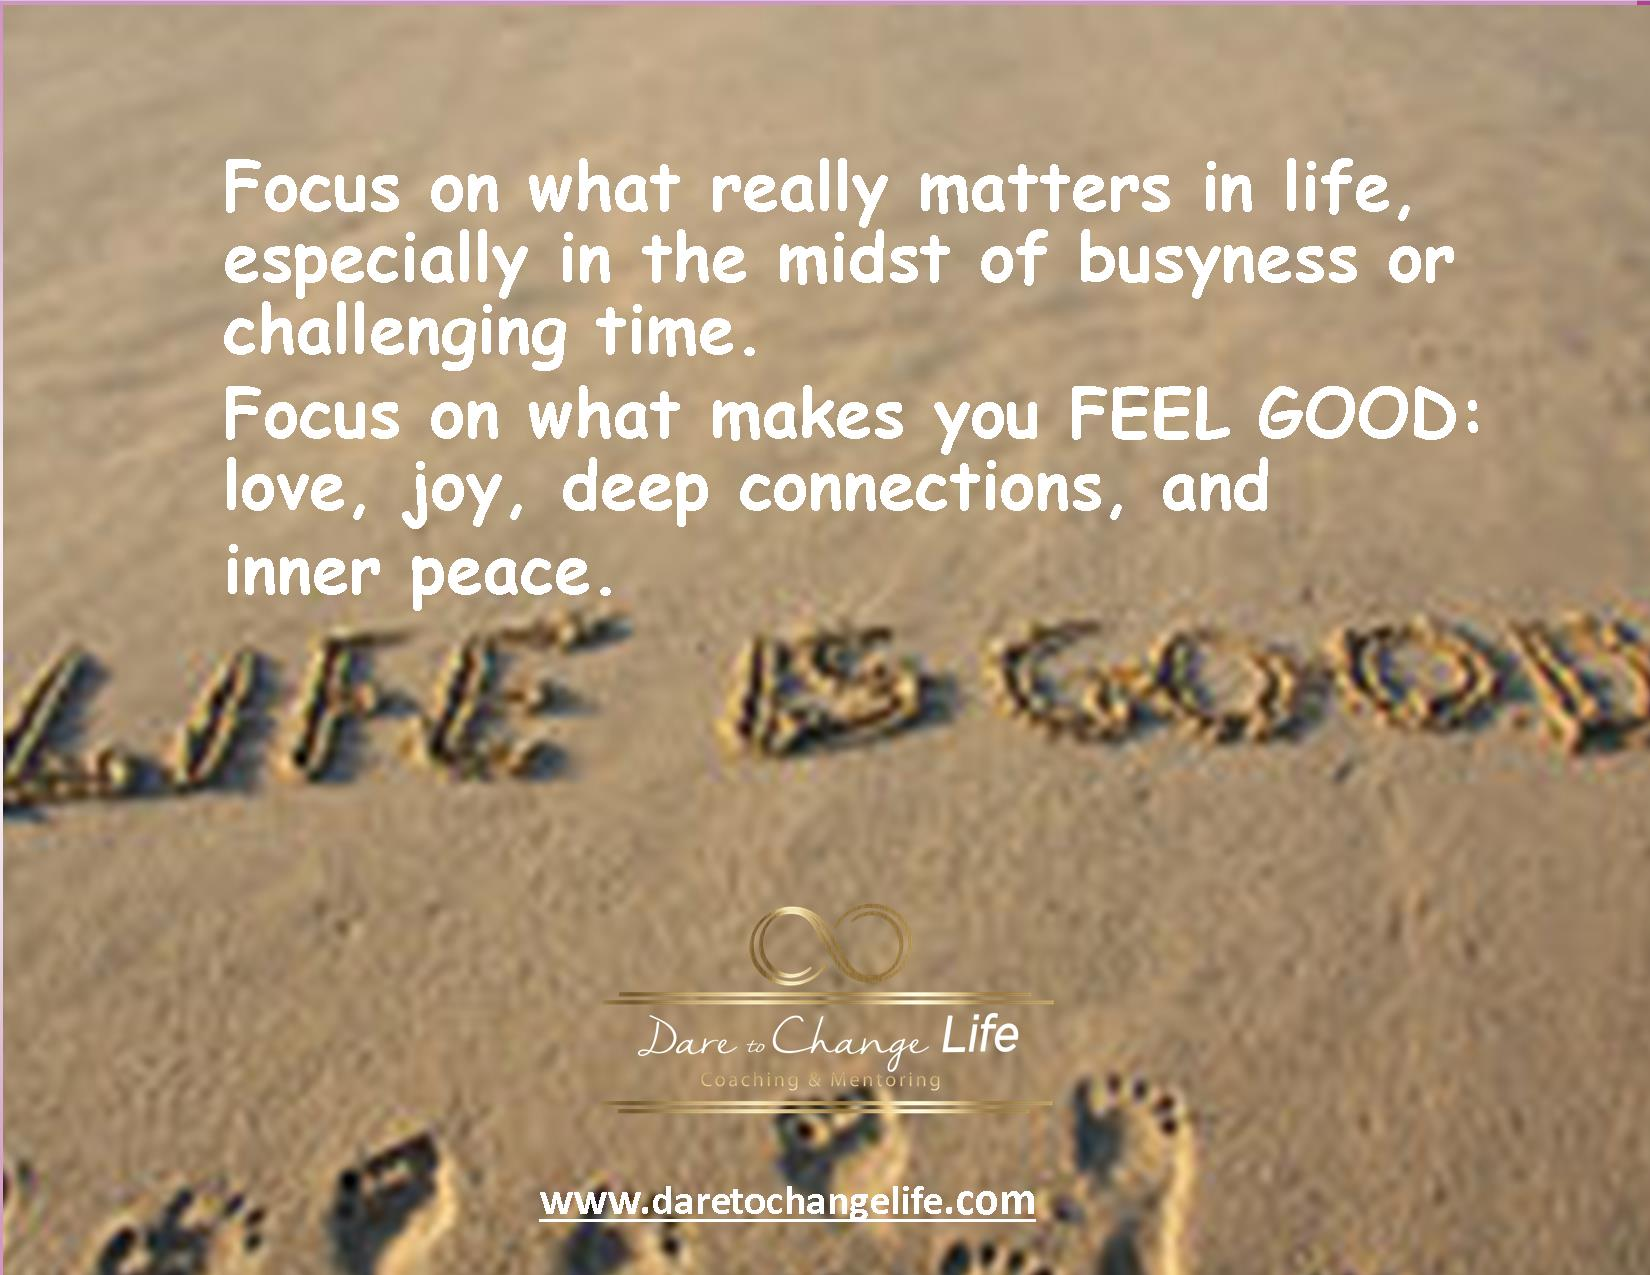 What Really Matters In Life Quotes Interesting Dare To Change Life Coaching & Mentoring  What Really Matters In